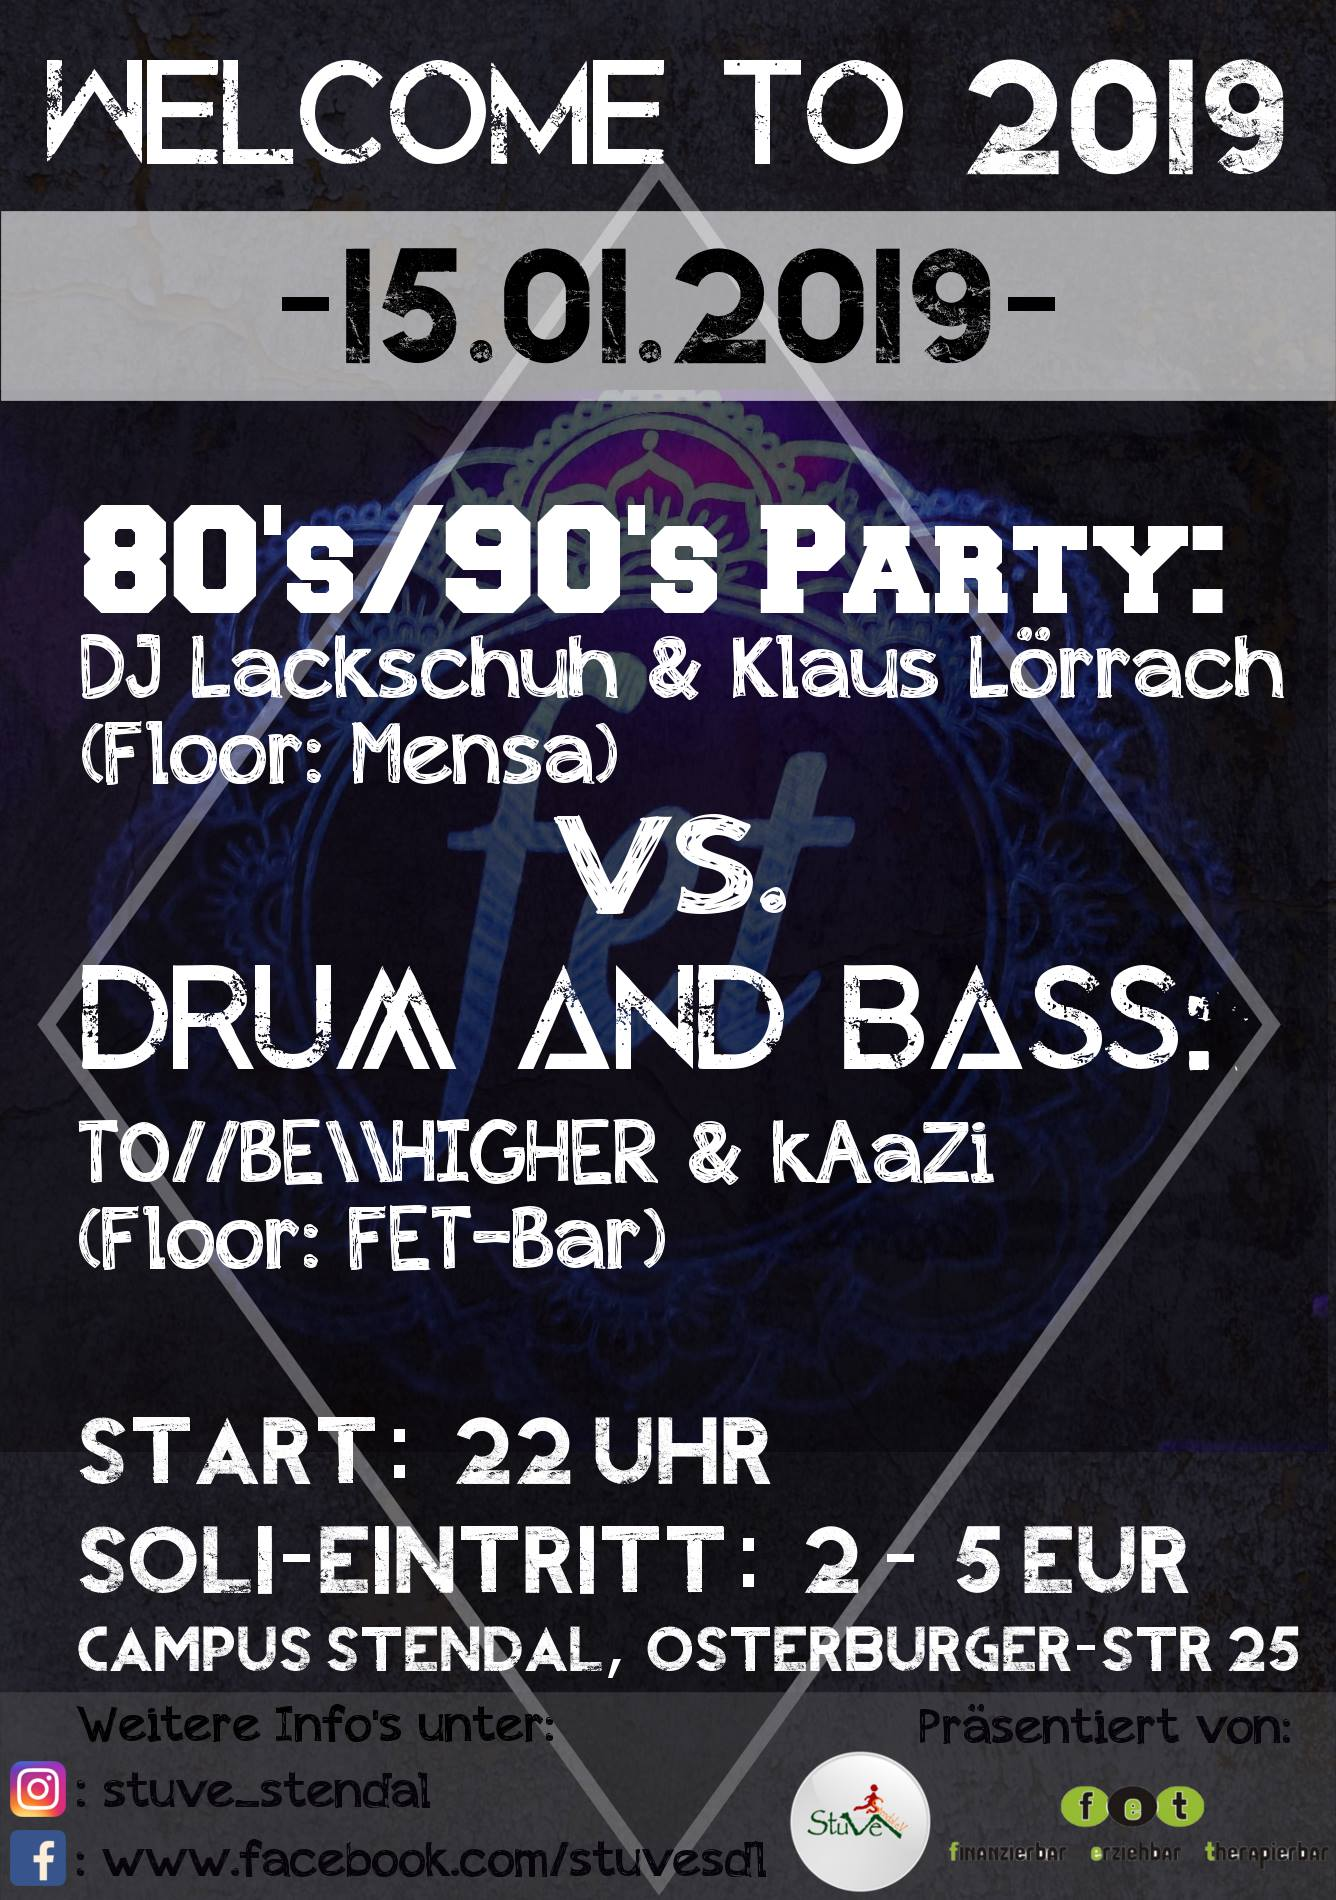 Welcome To 2019 – 80's/90's vs. Drum and Bass